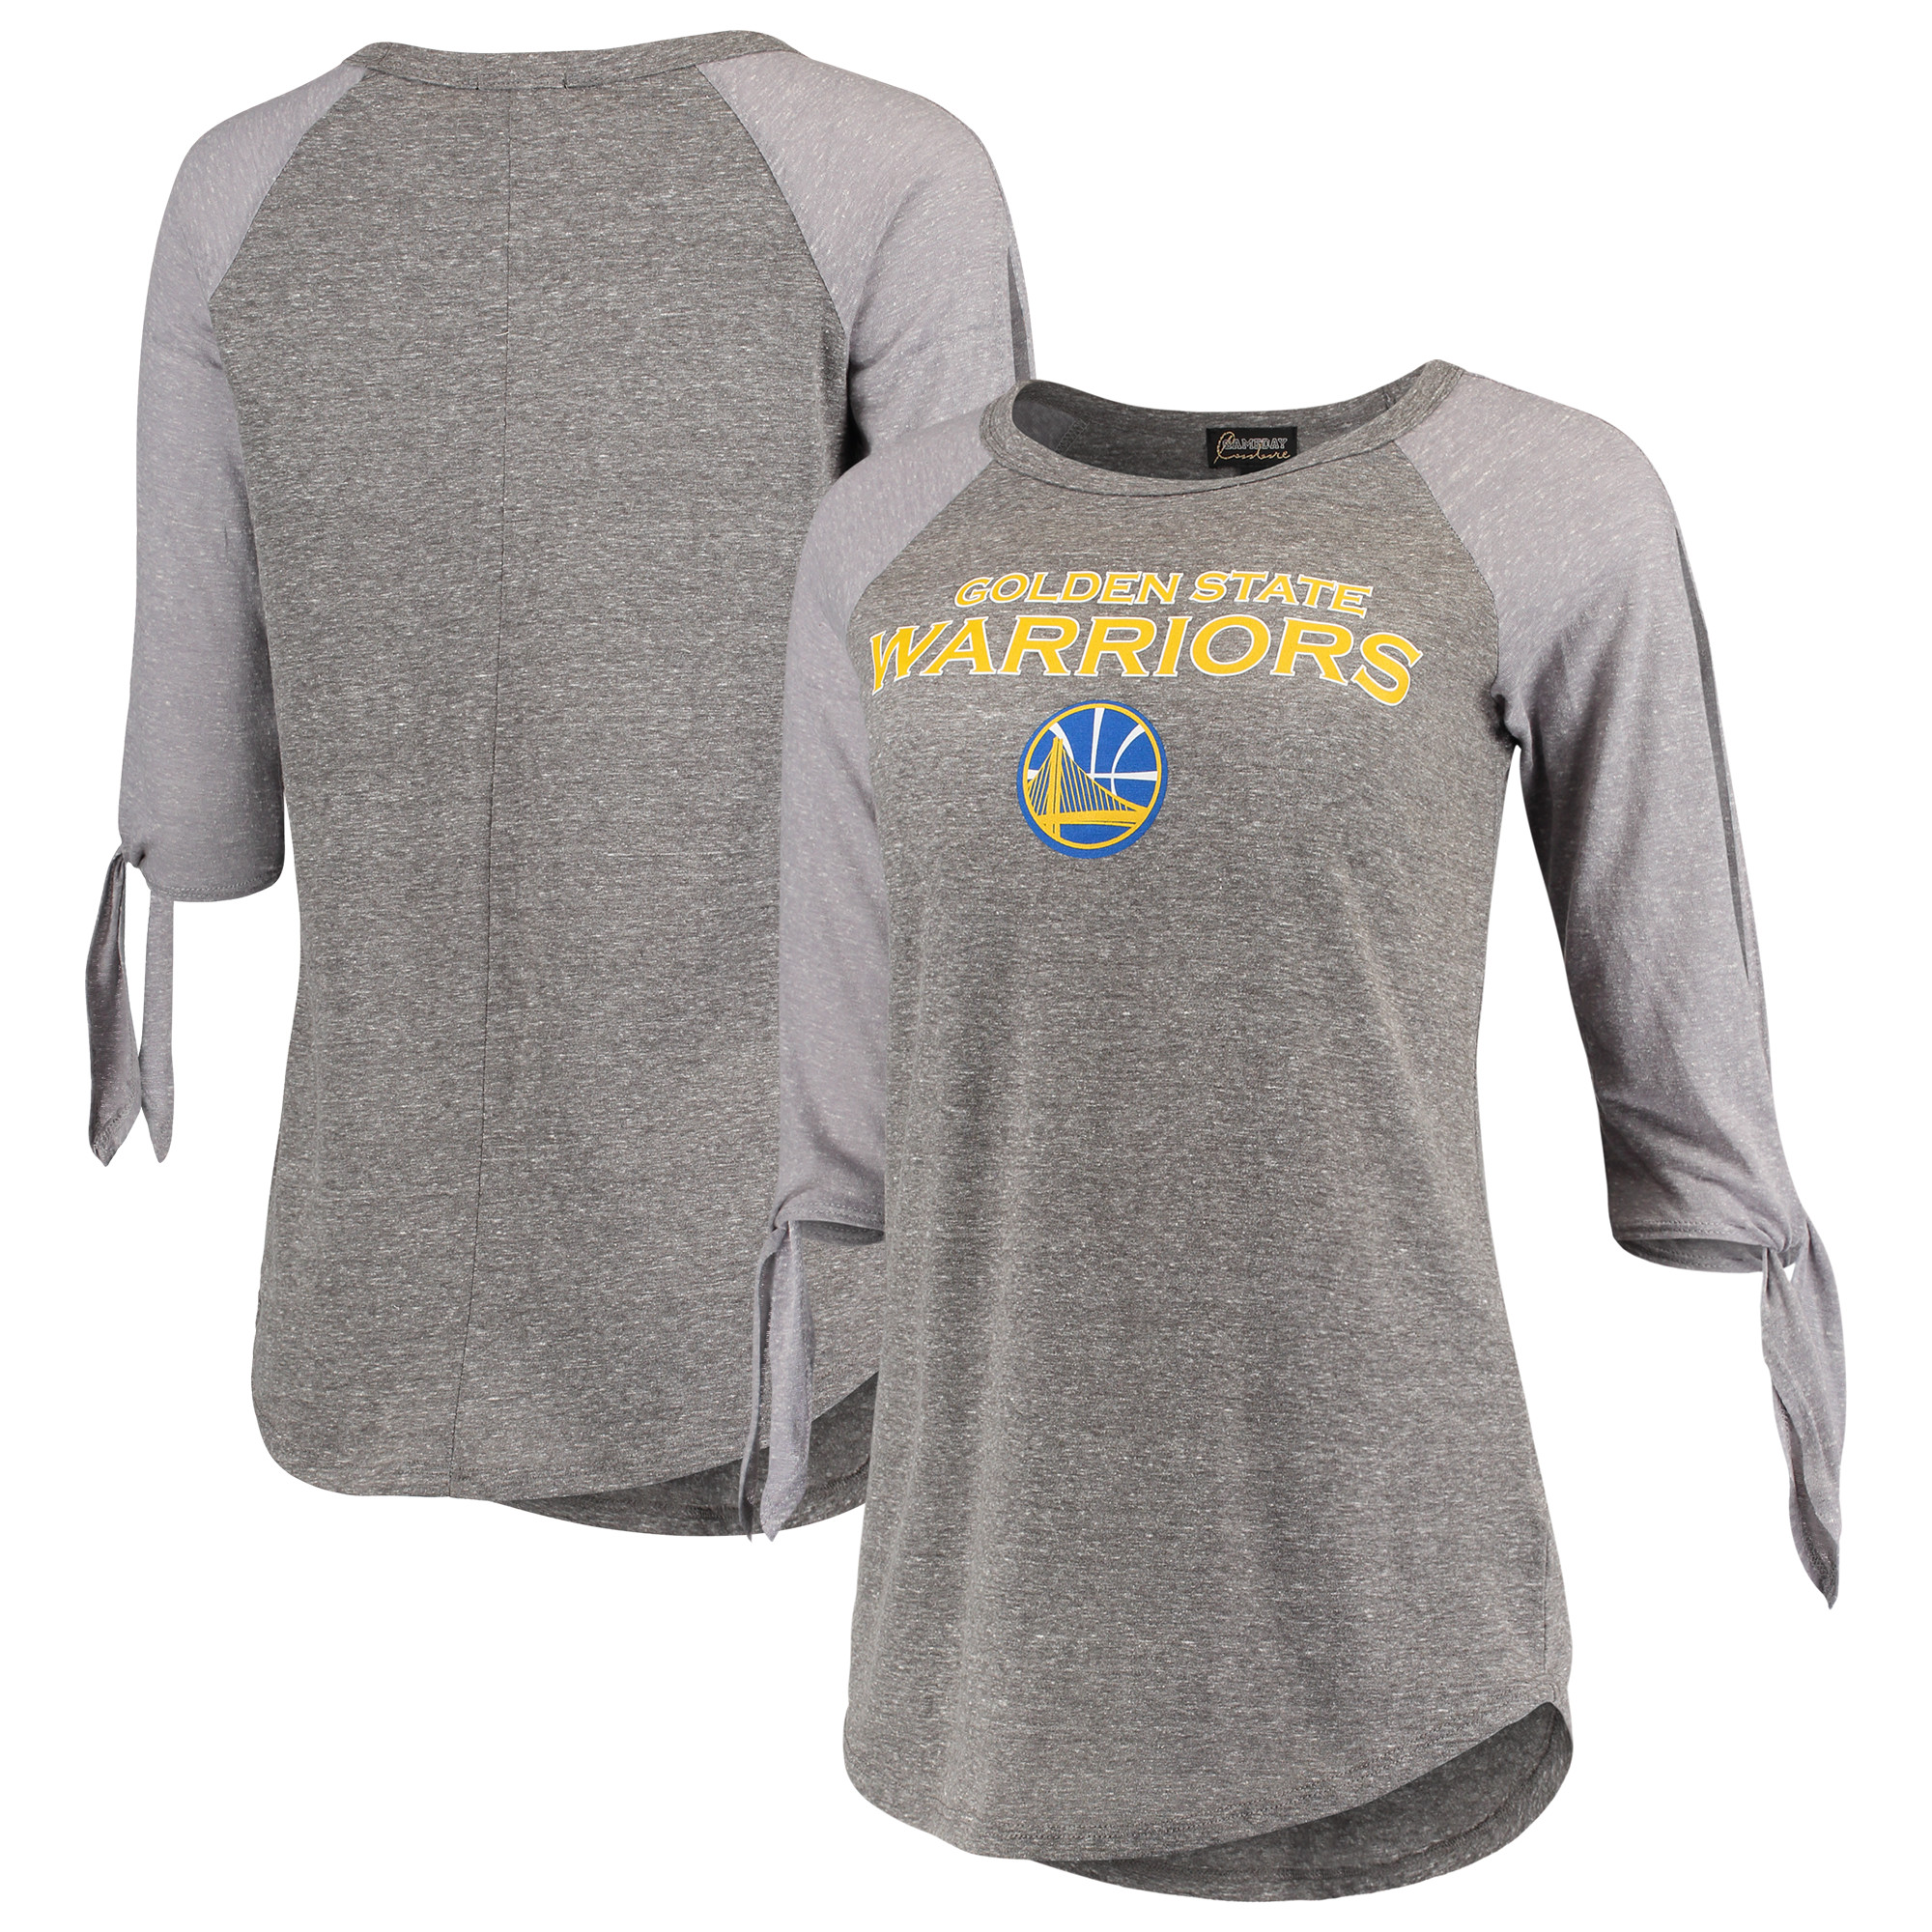 Golden State Warriors Women's Open Shoulder Raglan Tri-Blend 3/4-Sleeve T-Shirt - Heathered Gray